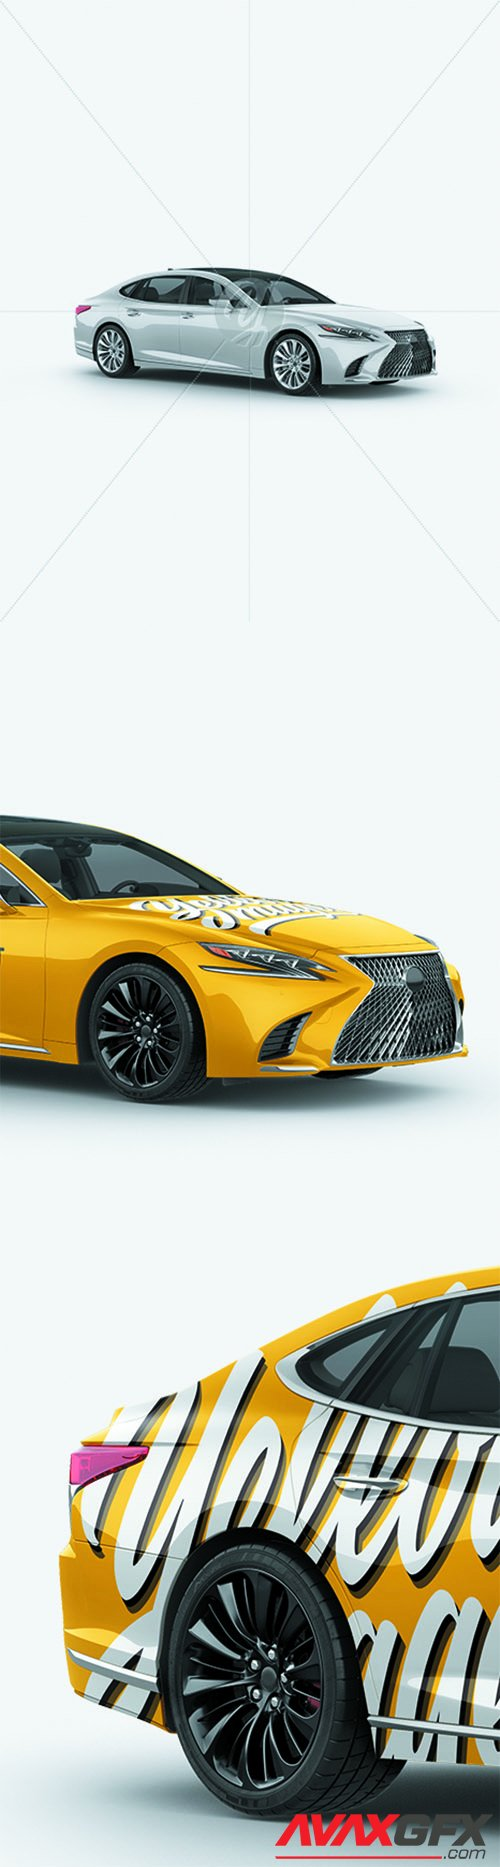 Lexus LS 500 Mockup - Half Side View 27707